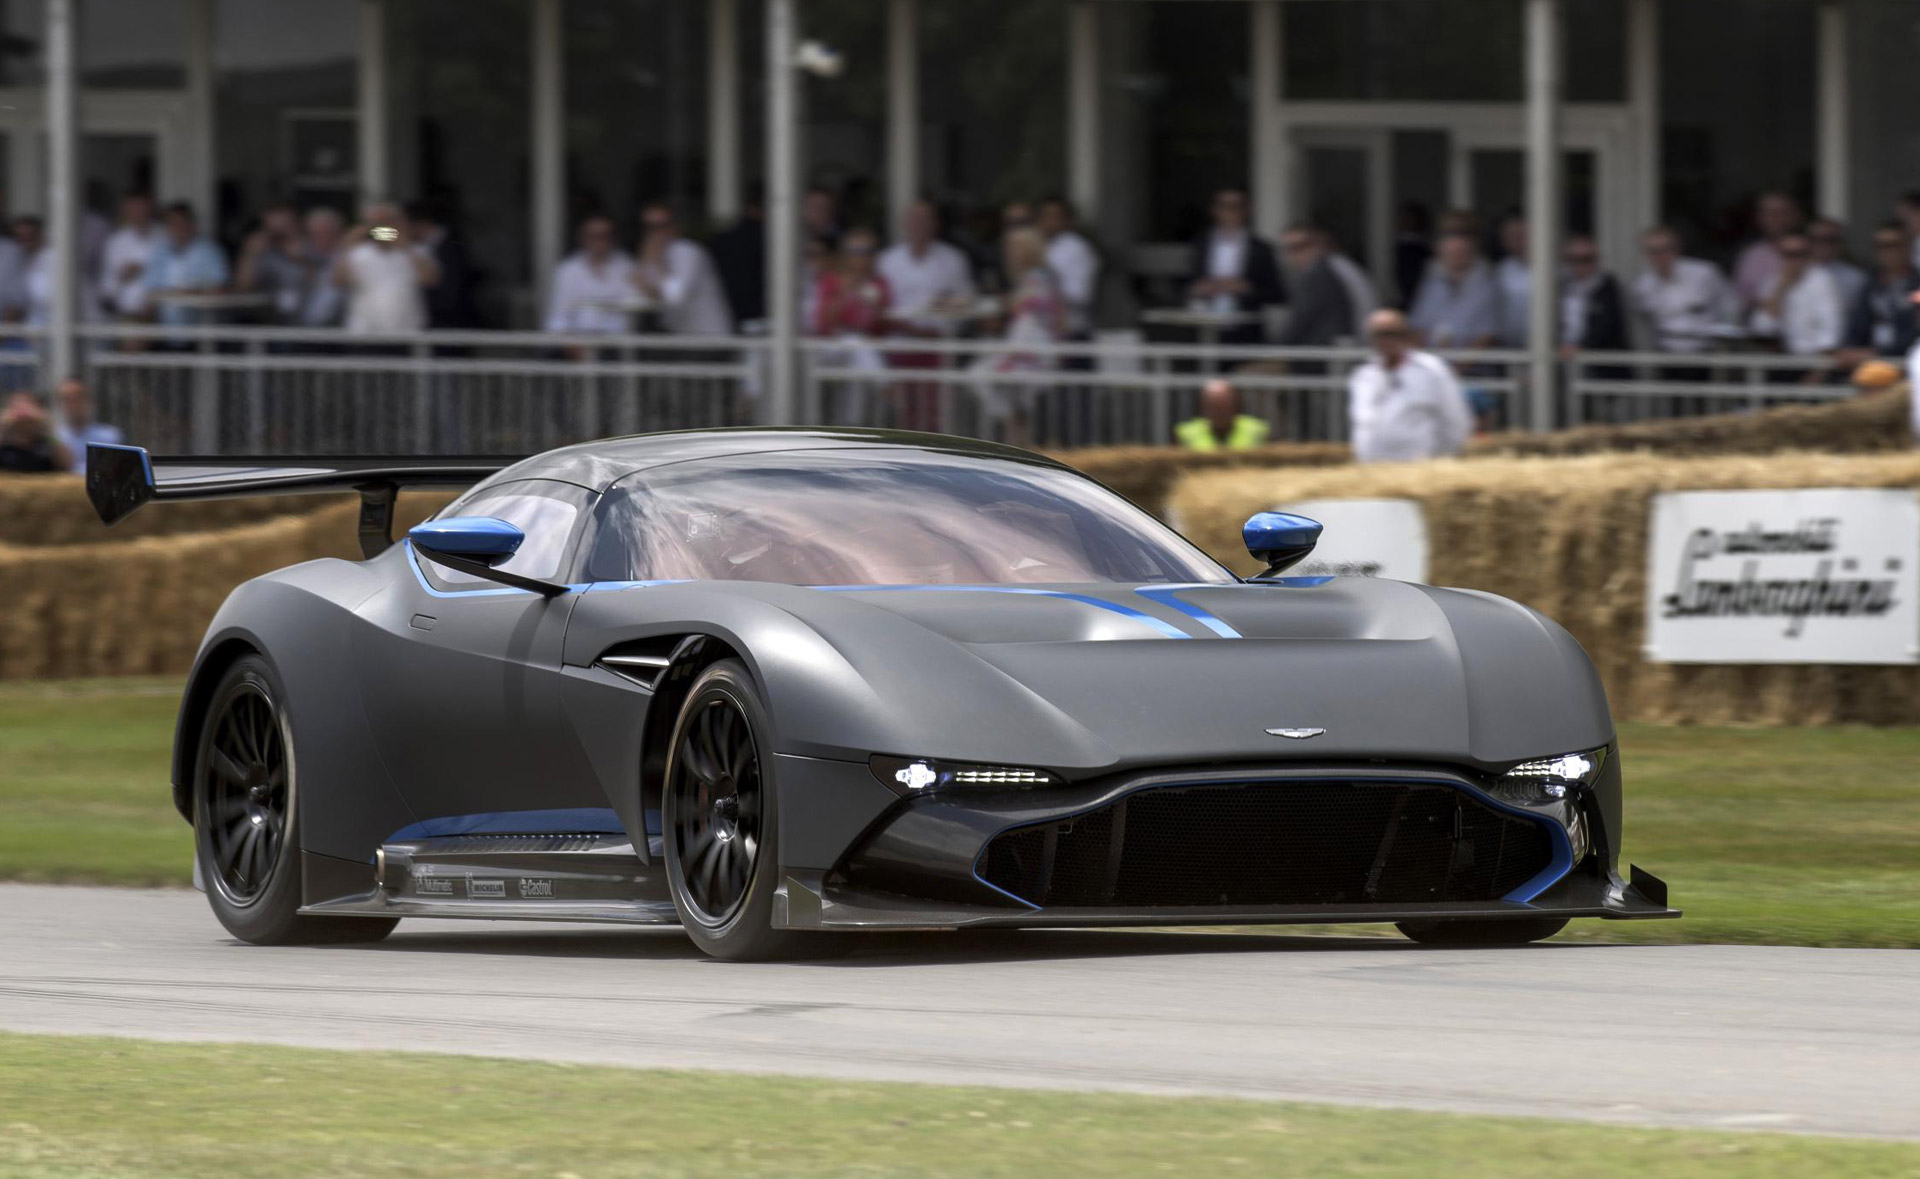 aston martin vulcan makes dynamic debut at 2015 goodwood festival